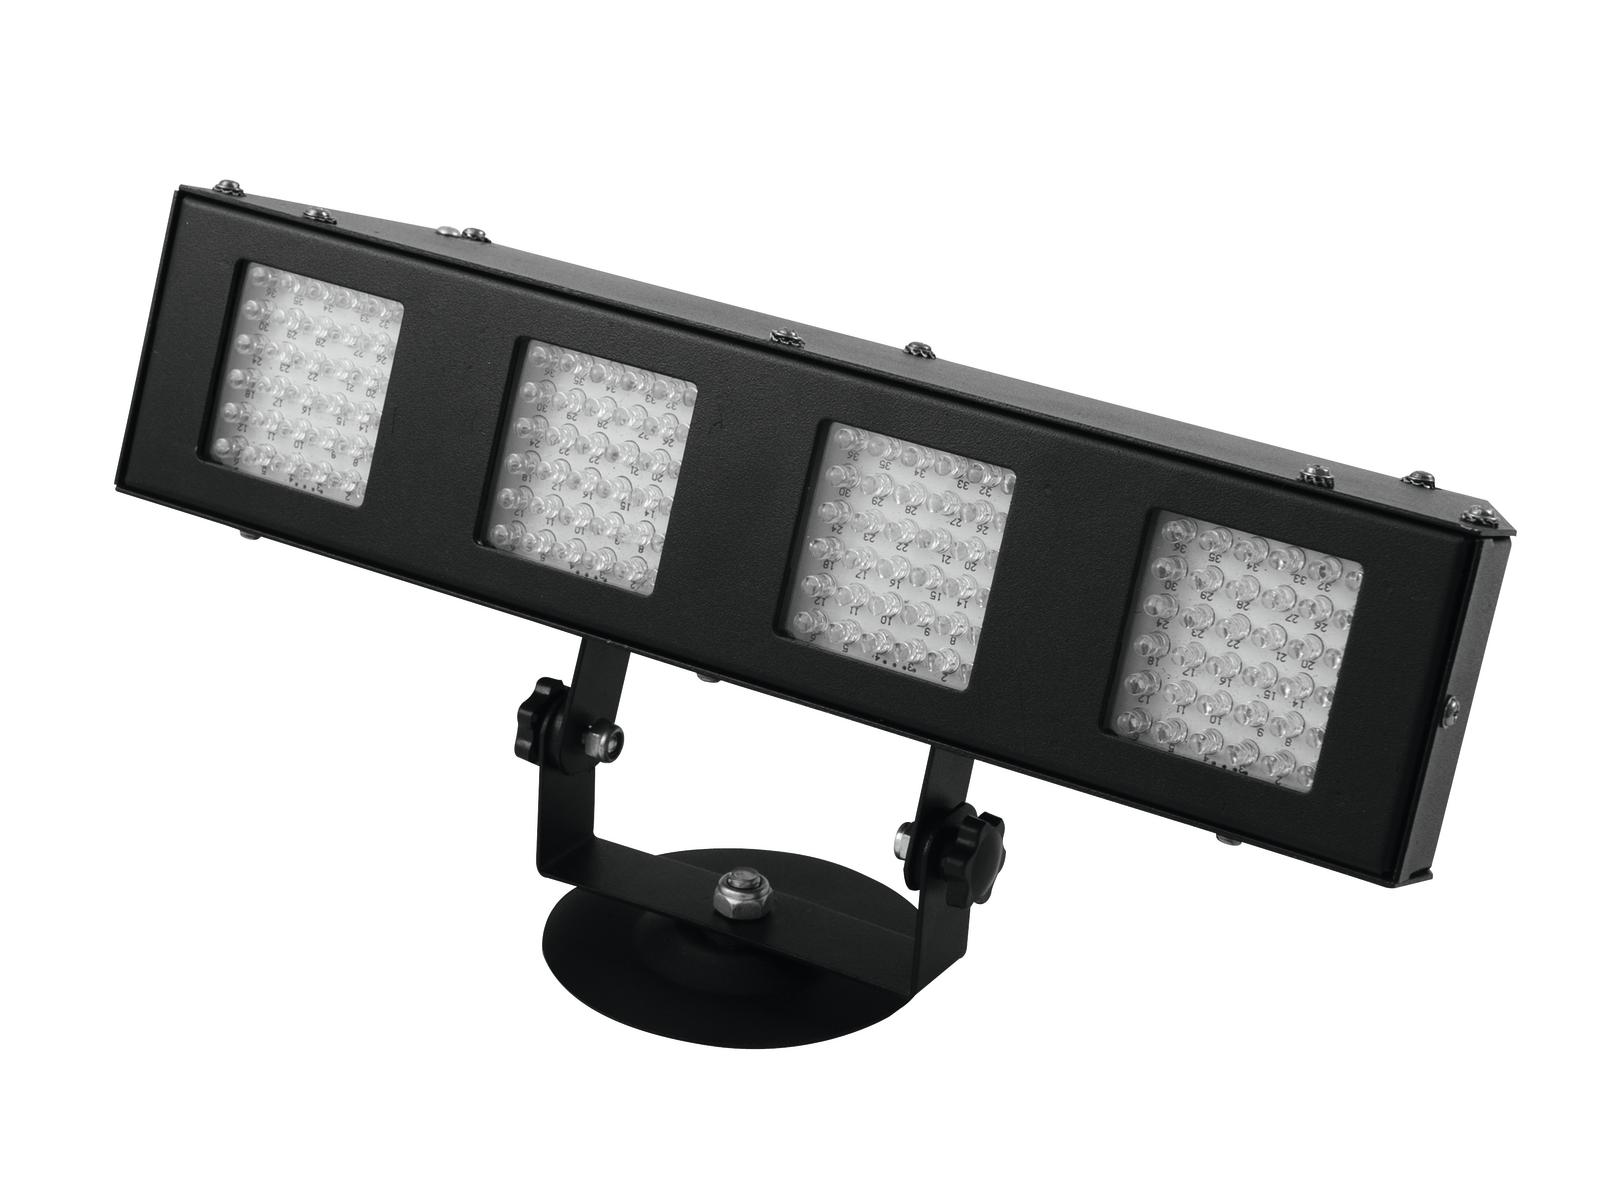 EUROLITE LED KRF-144 4-Channel Light Bar